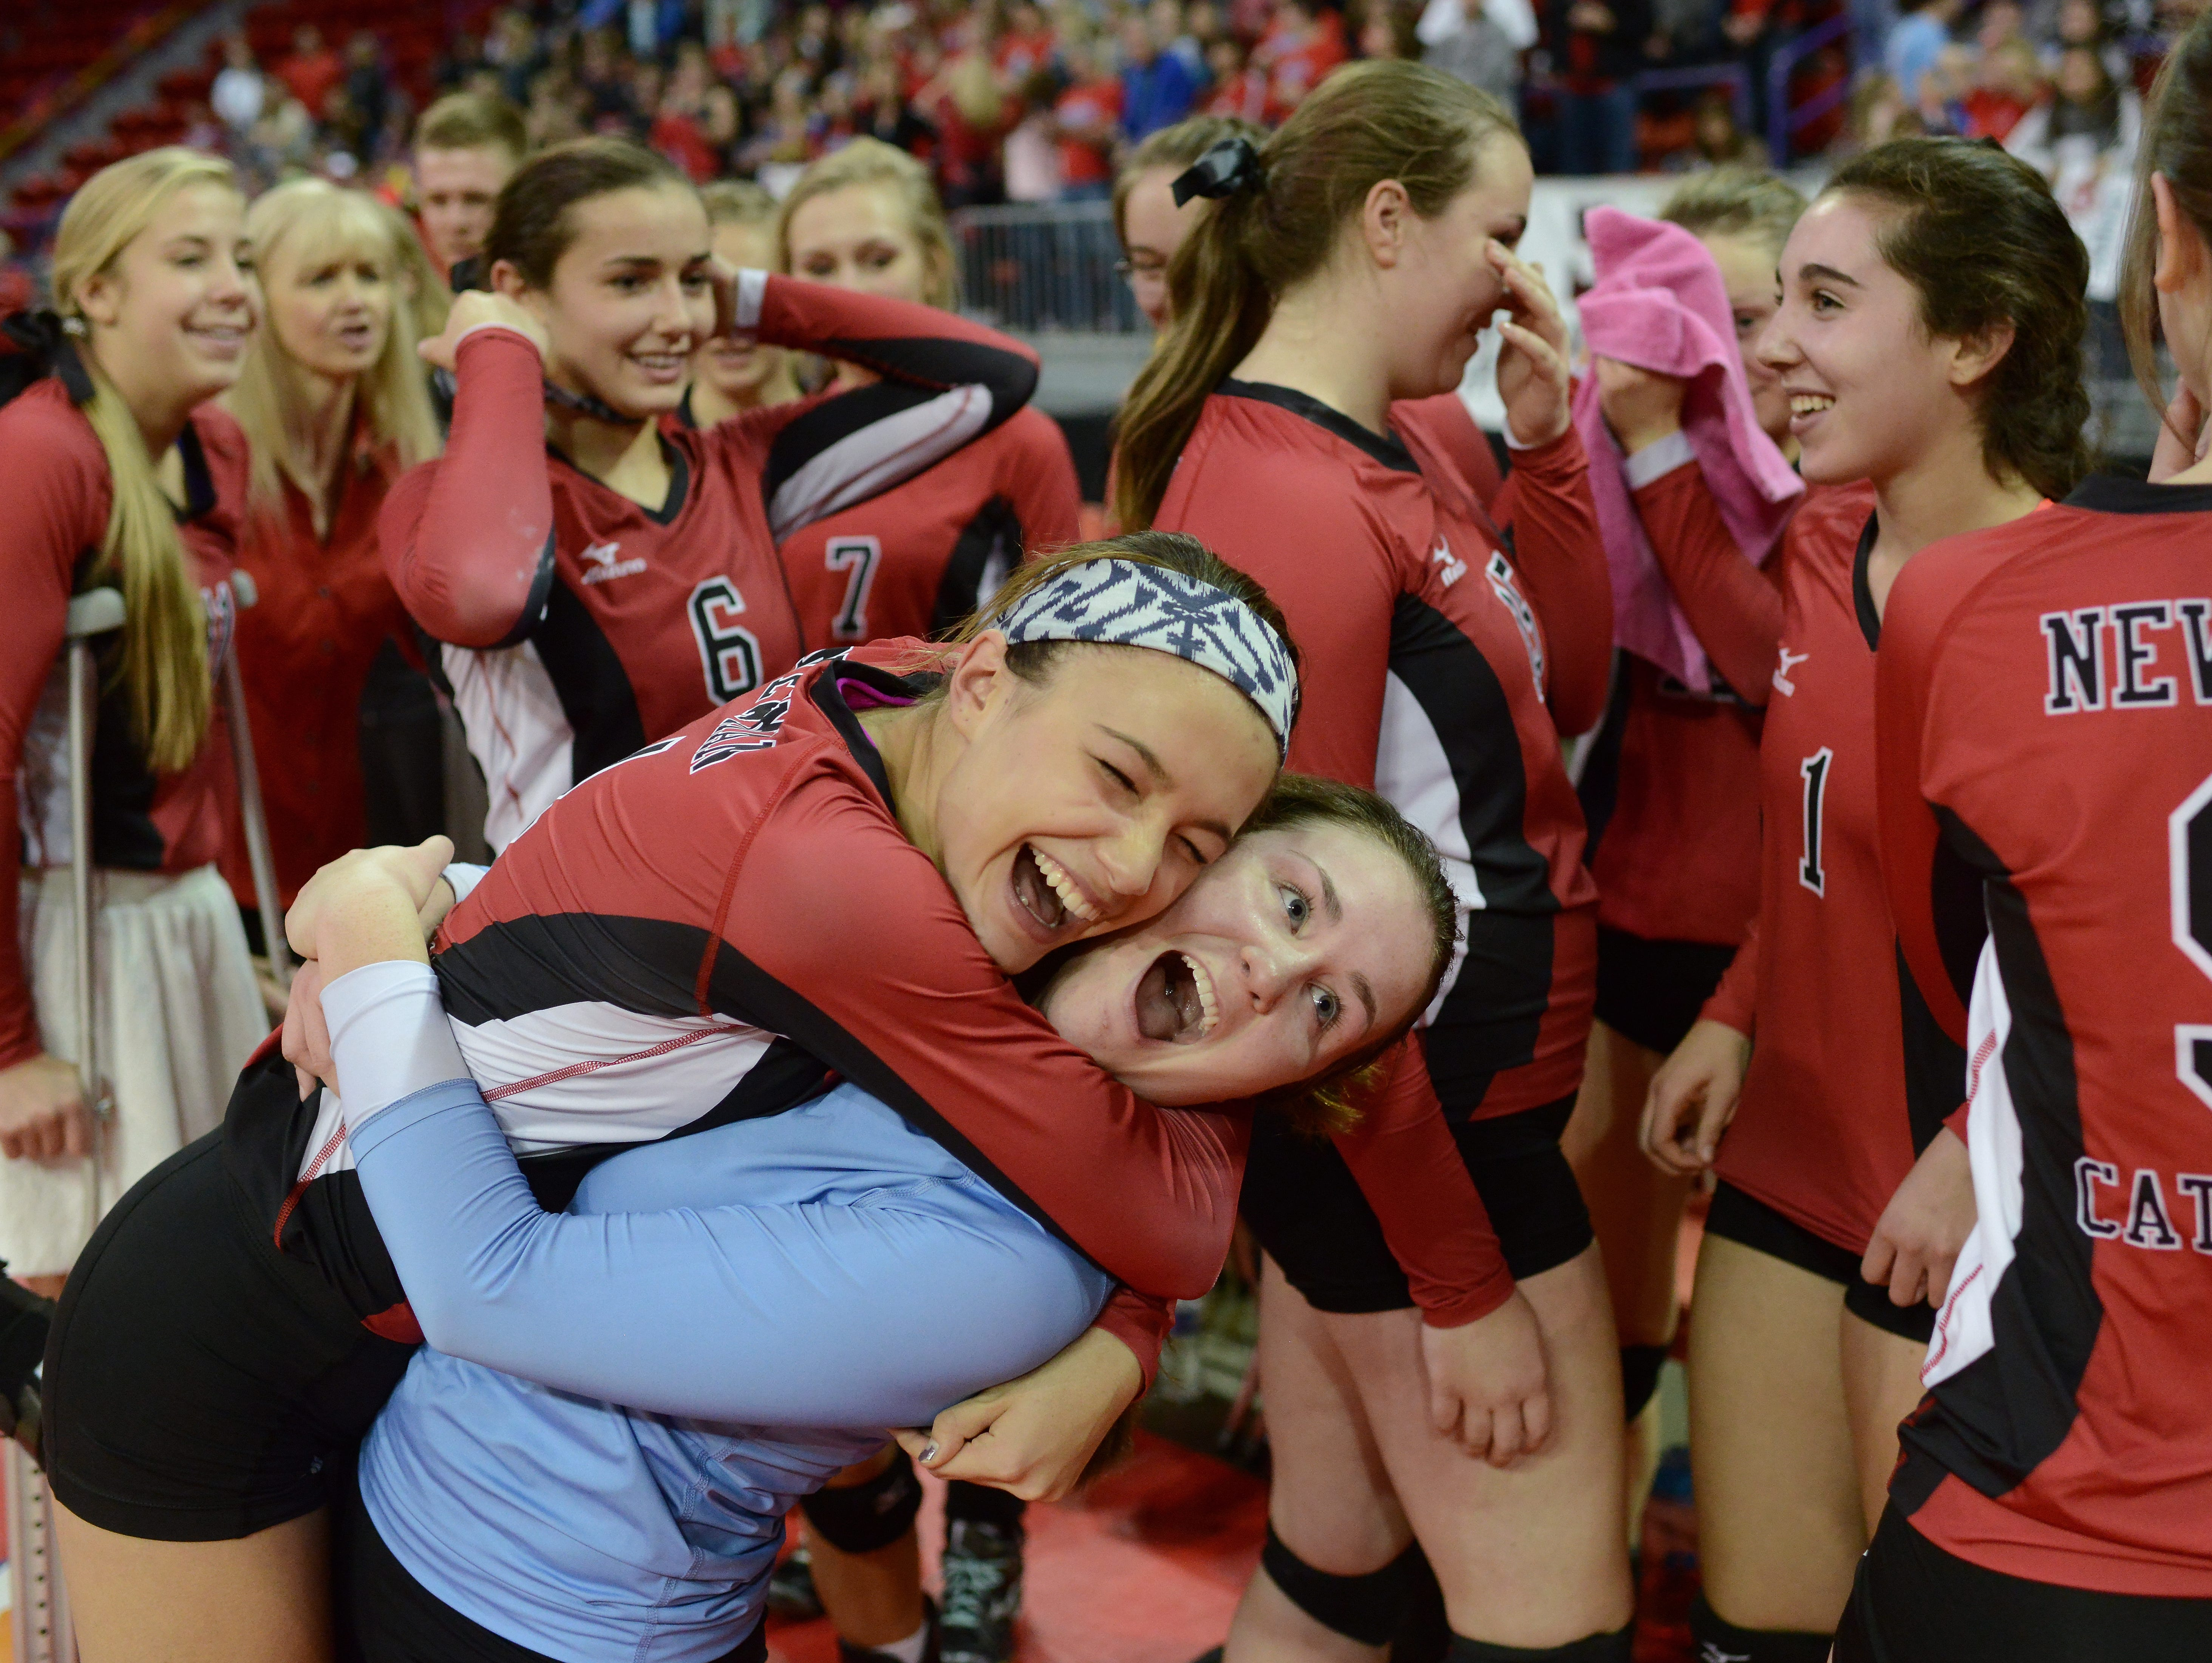 Newman Catholic setter Rylie Vaughn leaps on libero Breck Wcisel as they celebrate their victory in the WIAA Division 4 State Championship volleyball match at the Resch Center in Ashwaubenon Saturday. Newman Catholic defeated Southwestern in four sets.